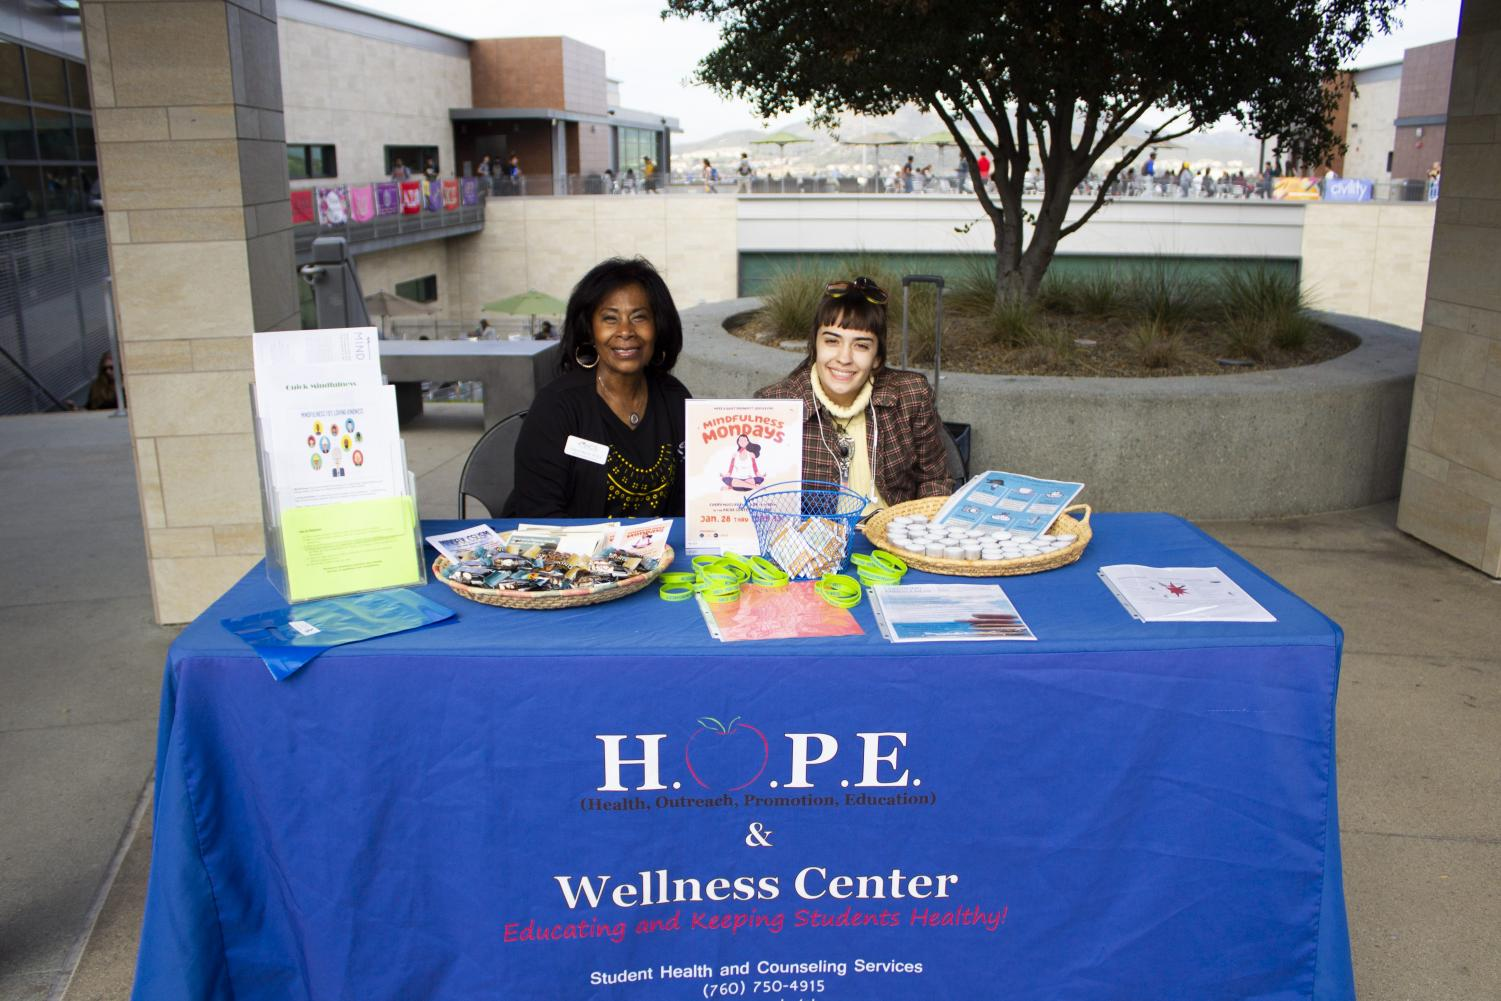 Mental health educator Cheryl Berry, M.Ed. and cougar chronicle news reporter Christina Suarez pose for a photo on Jan 29.